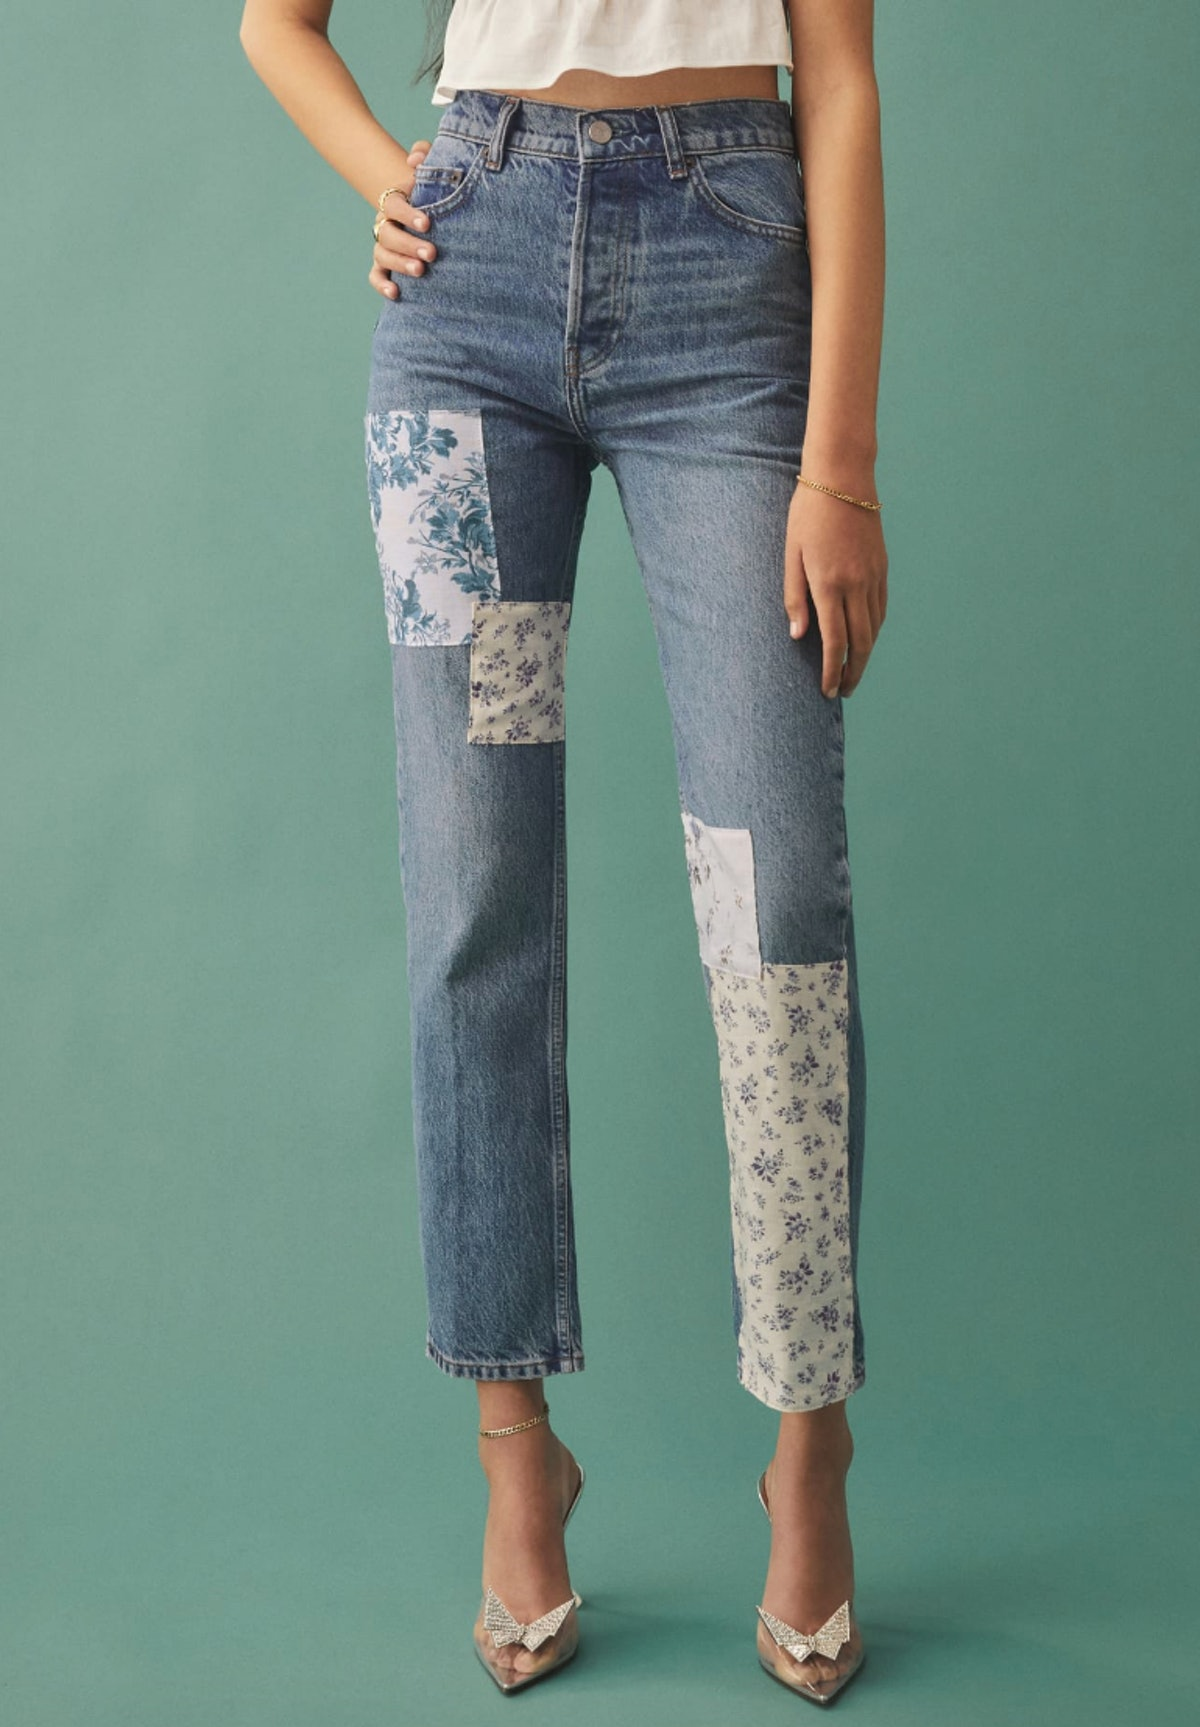 Reformation's Cynthia Linen Patch high Rise Straight Jeans.